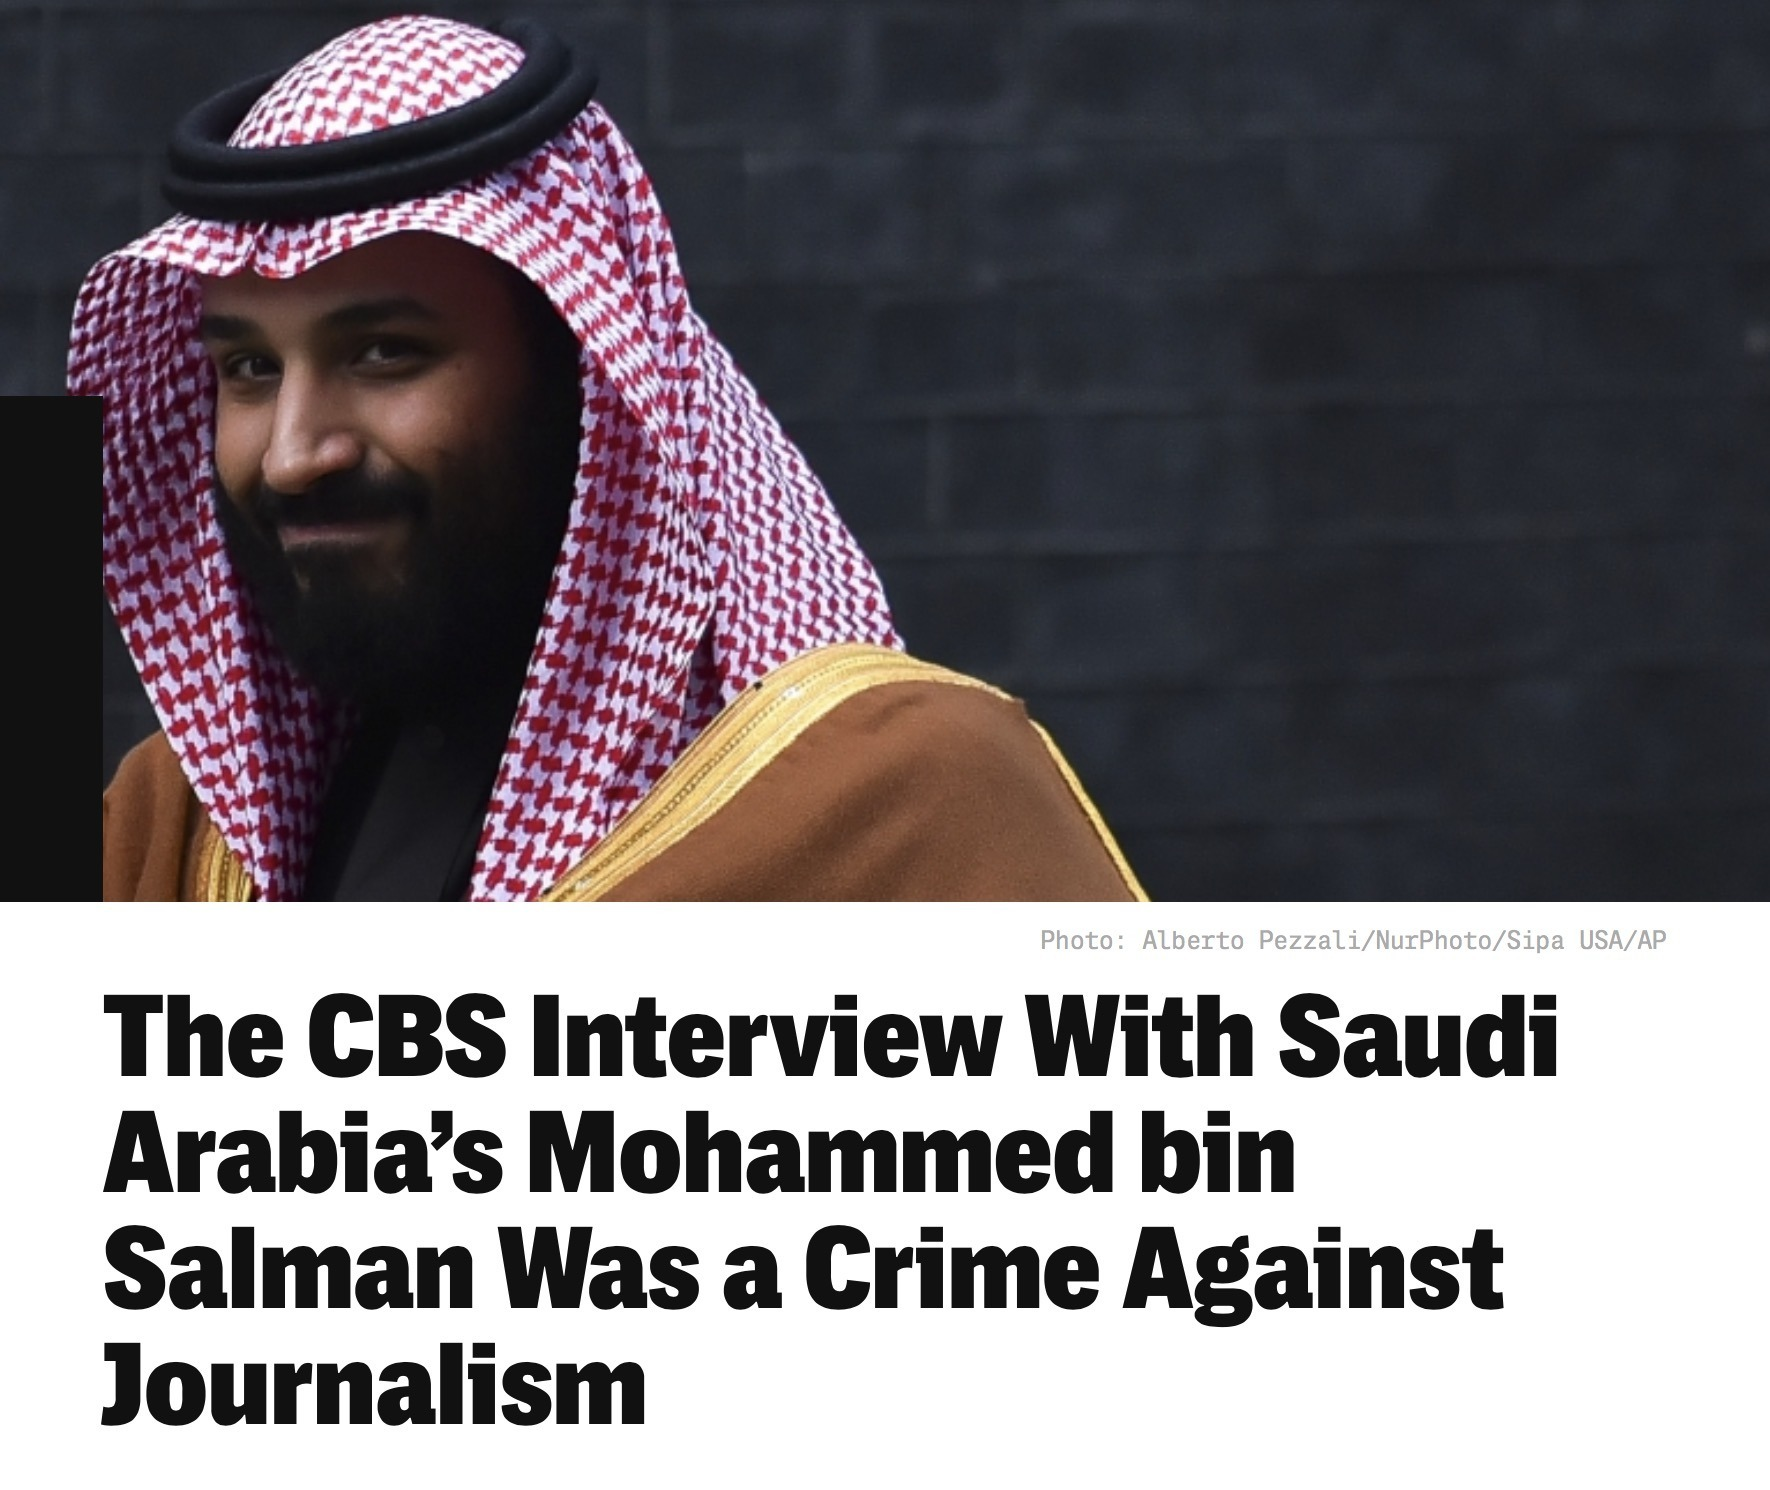 Liberty Links 3/25/18 – CBS Interview With Saudi Arabia's Mohammed bin Salman Was Crime Against Journalism